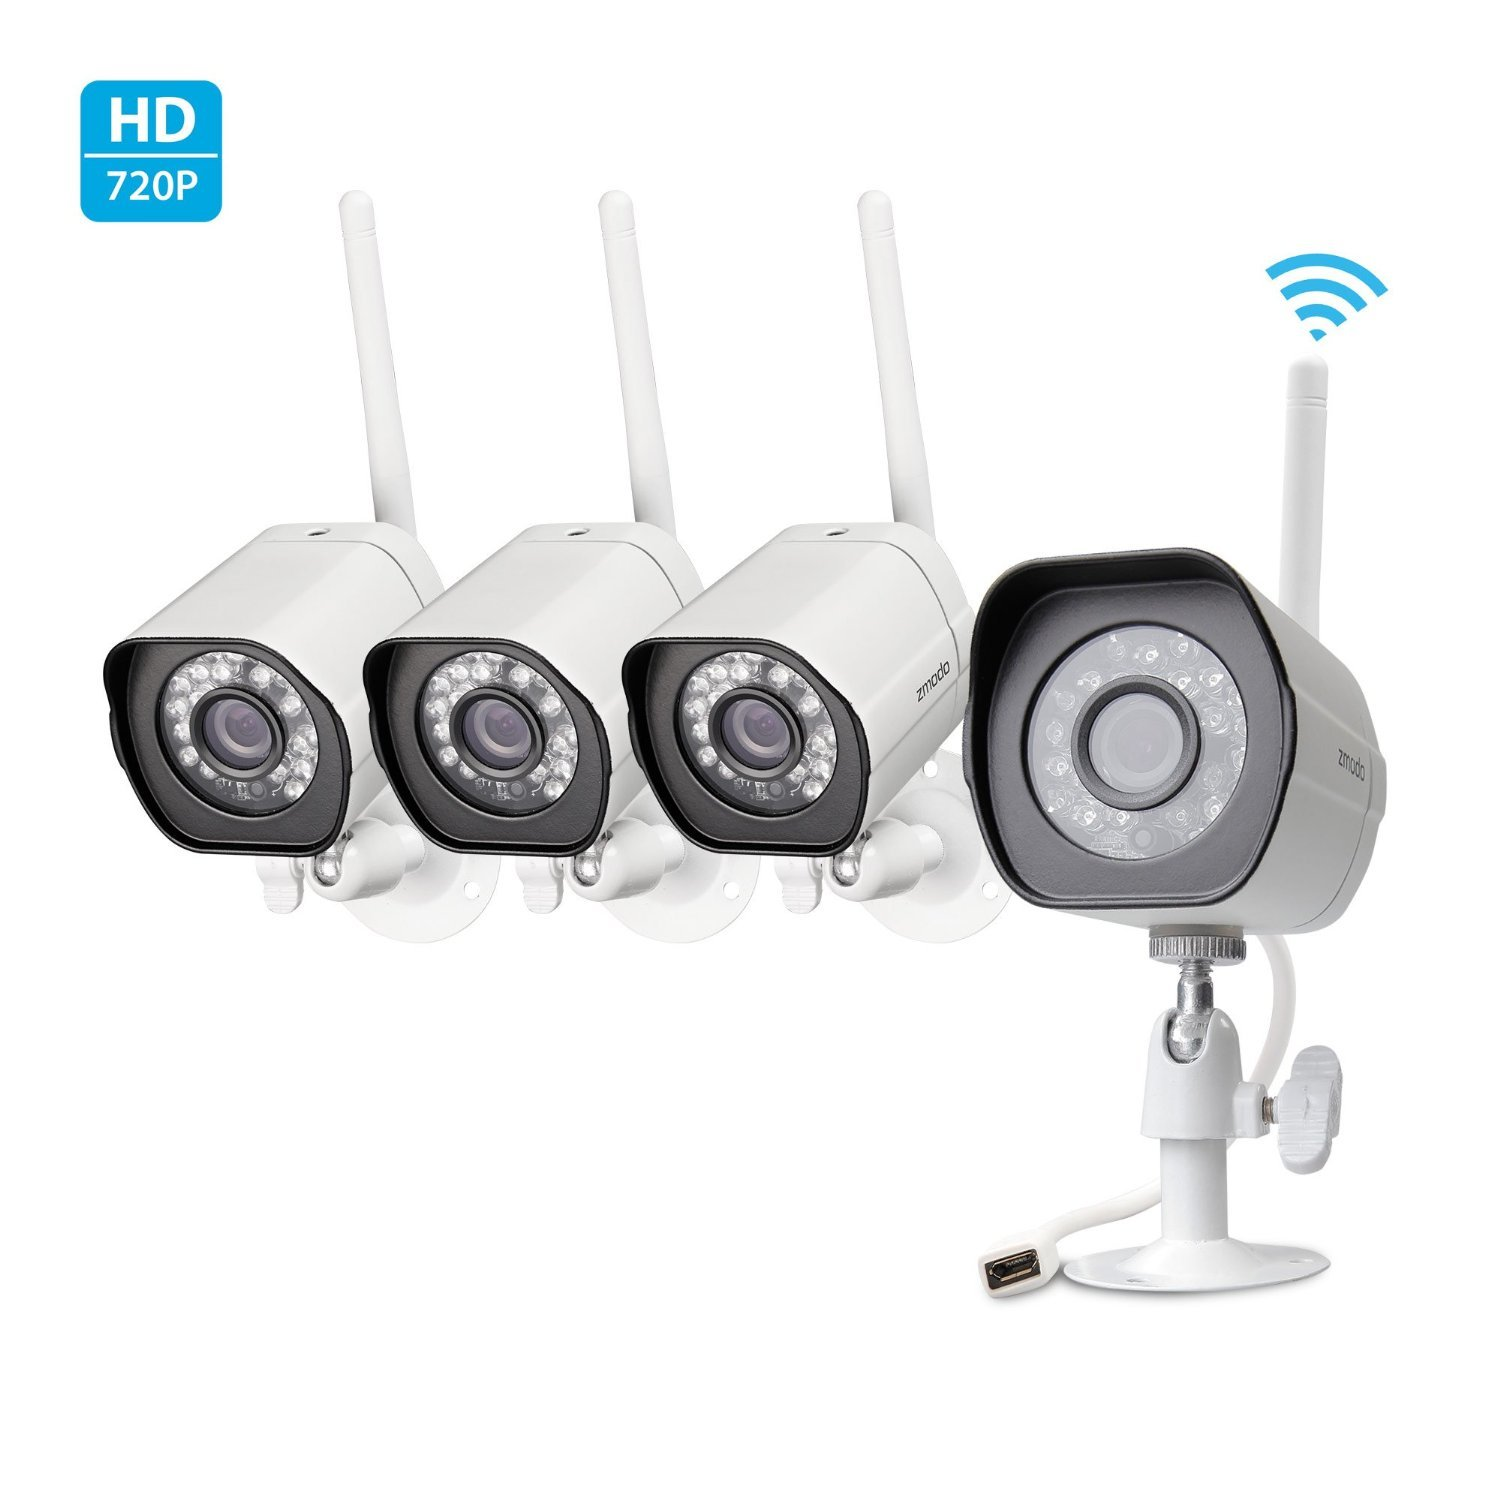 Best Wireless Security Camera Systems With Night Vision - Guide & Reviews